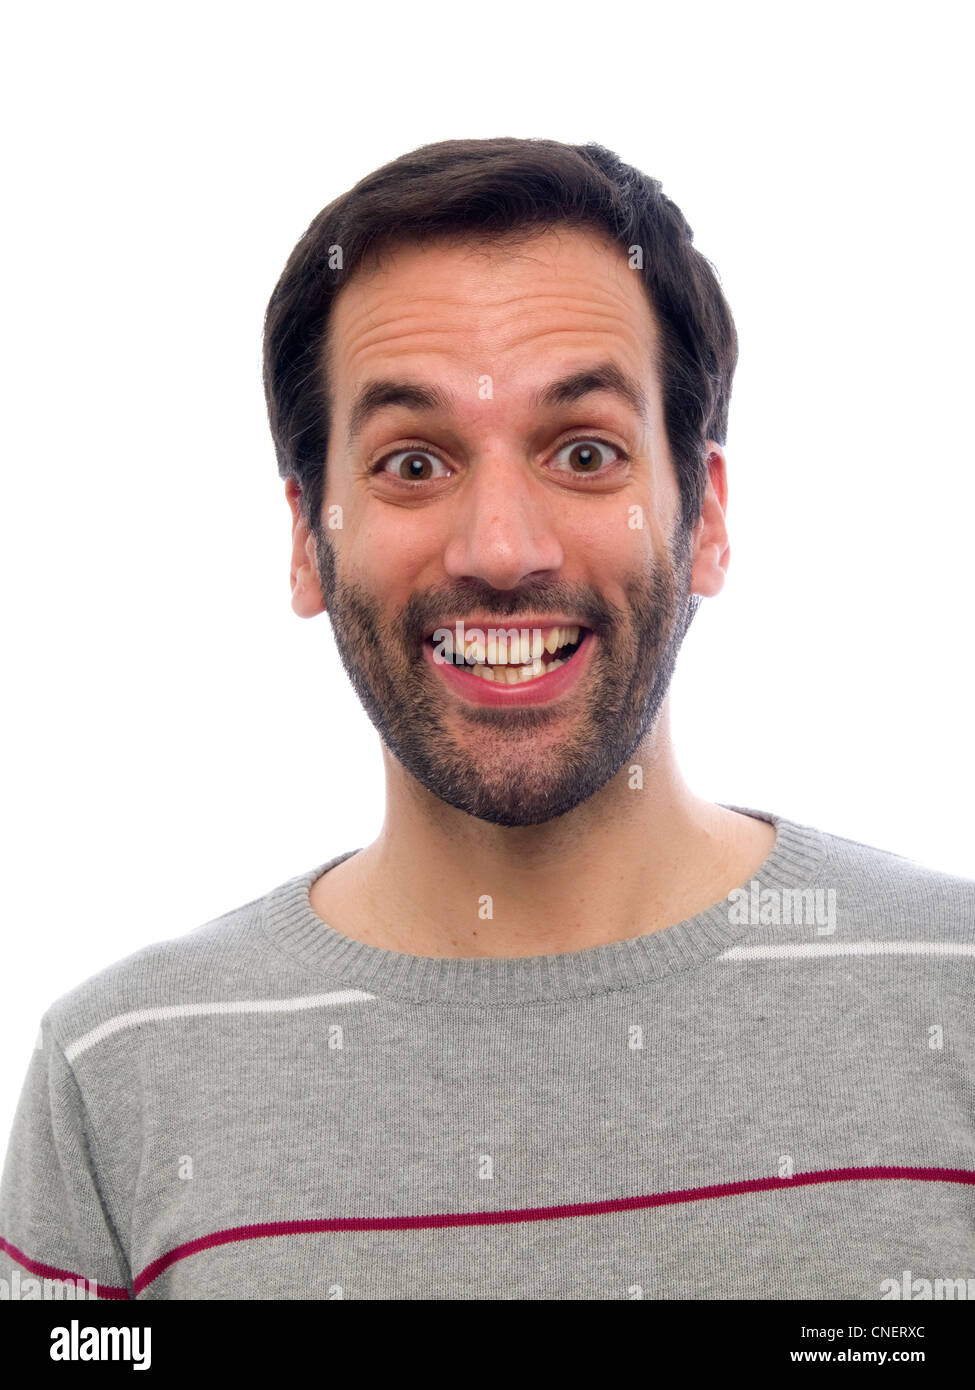 Portrait d'un jeune homme surpris avec beard looking at camera Photo Stock